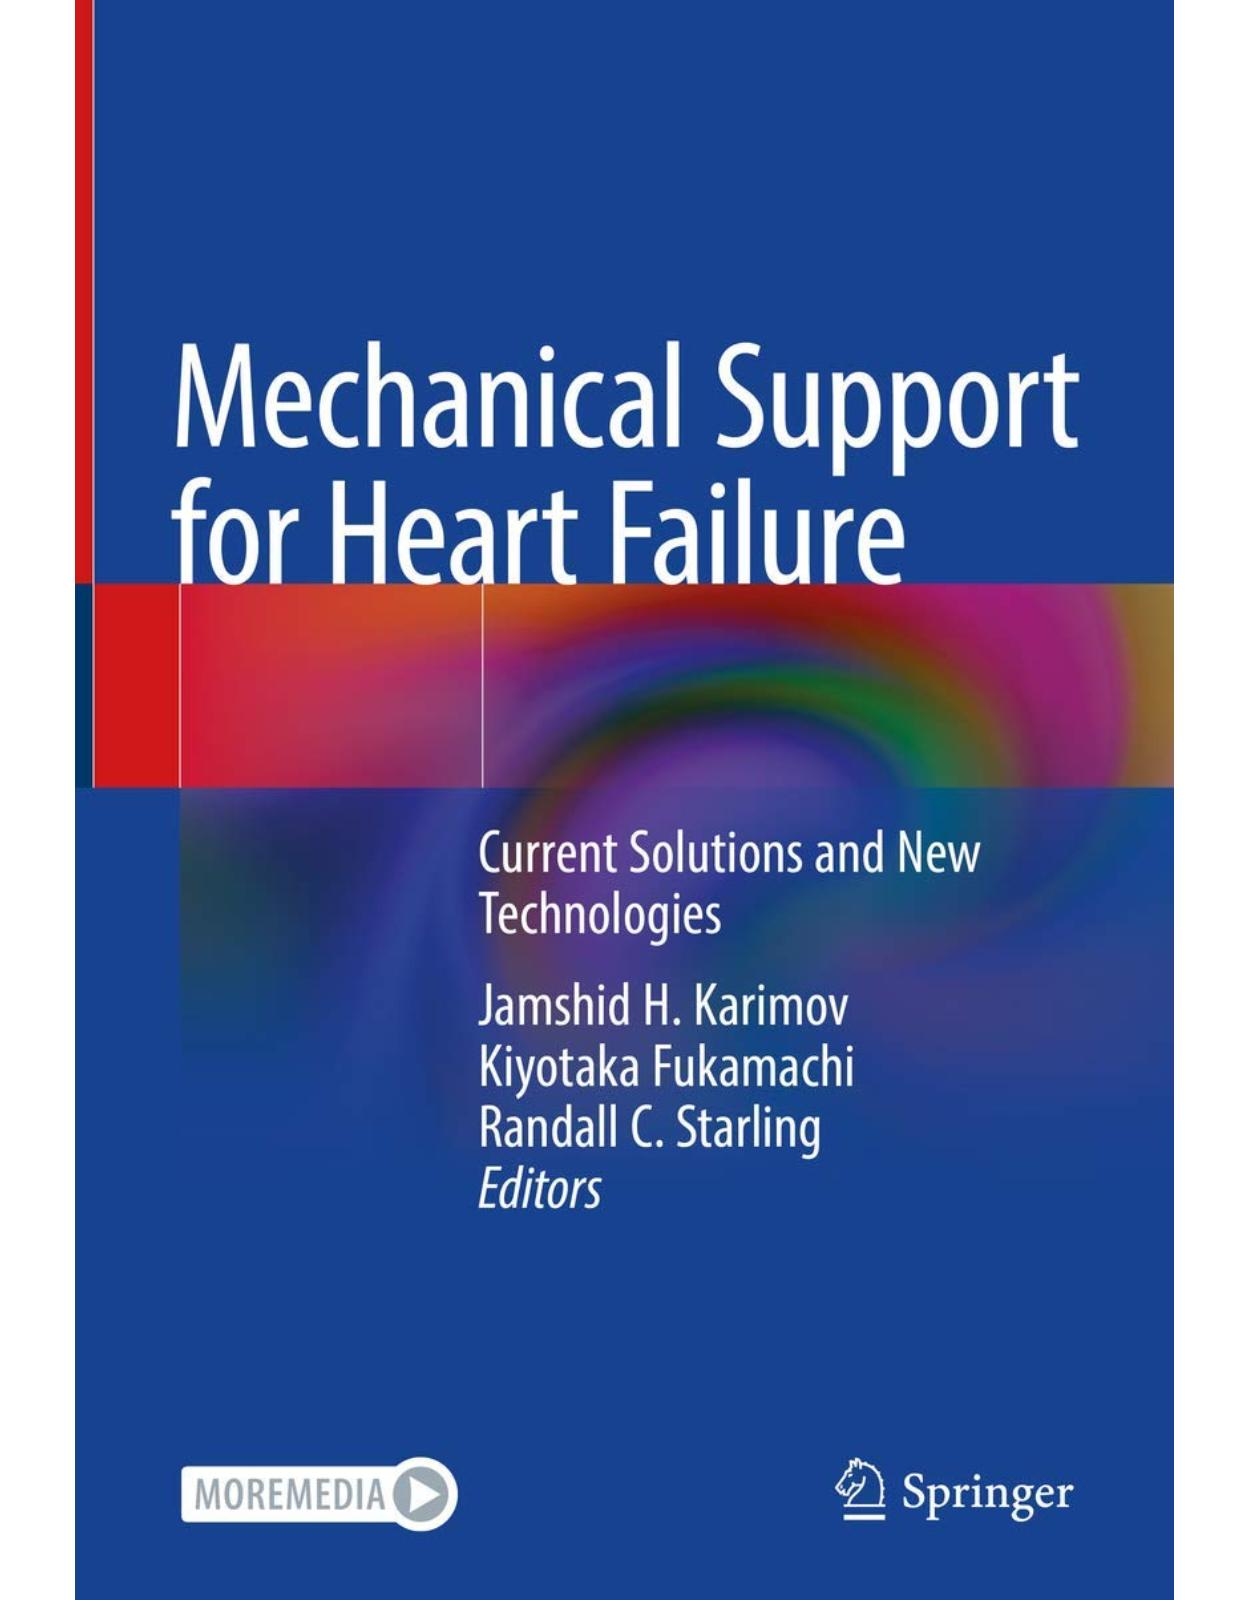 Mechanical Support for Heart Failure: Current Solutions and New Technologies